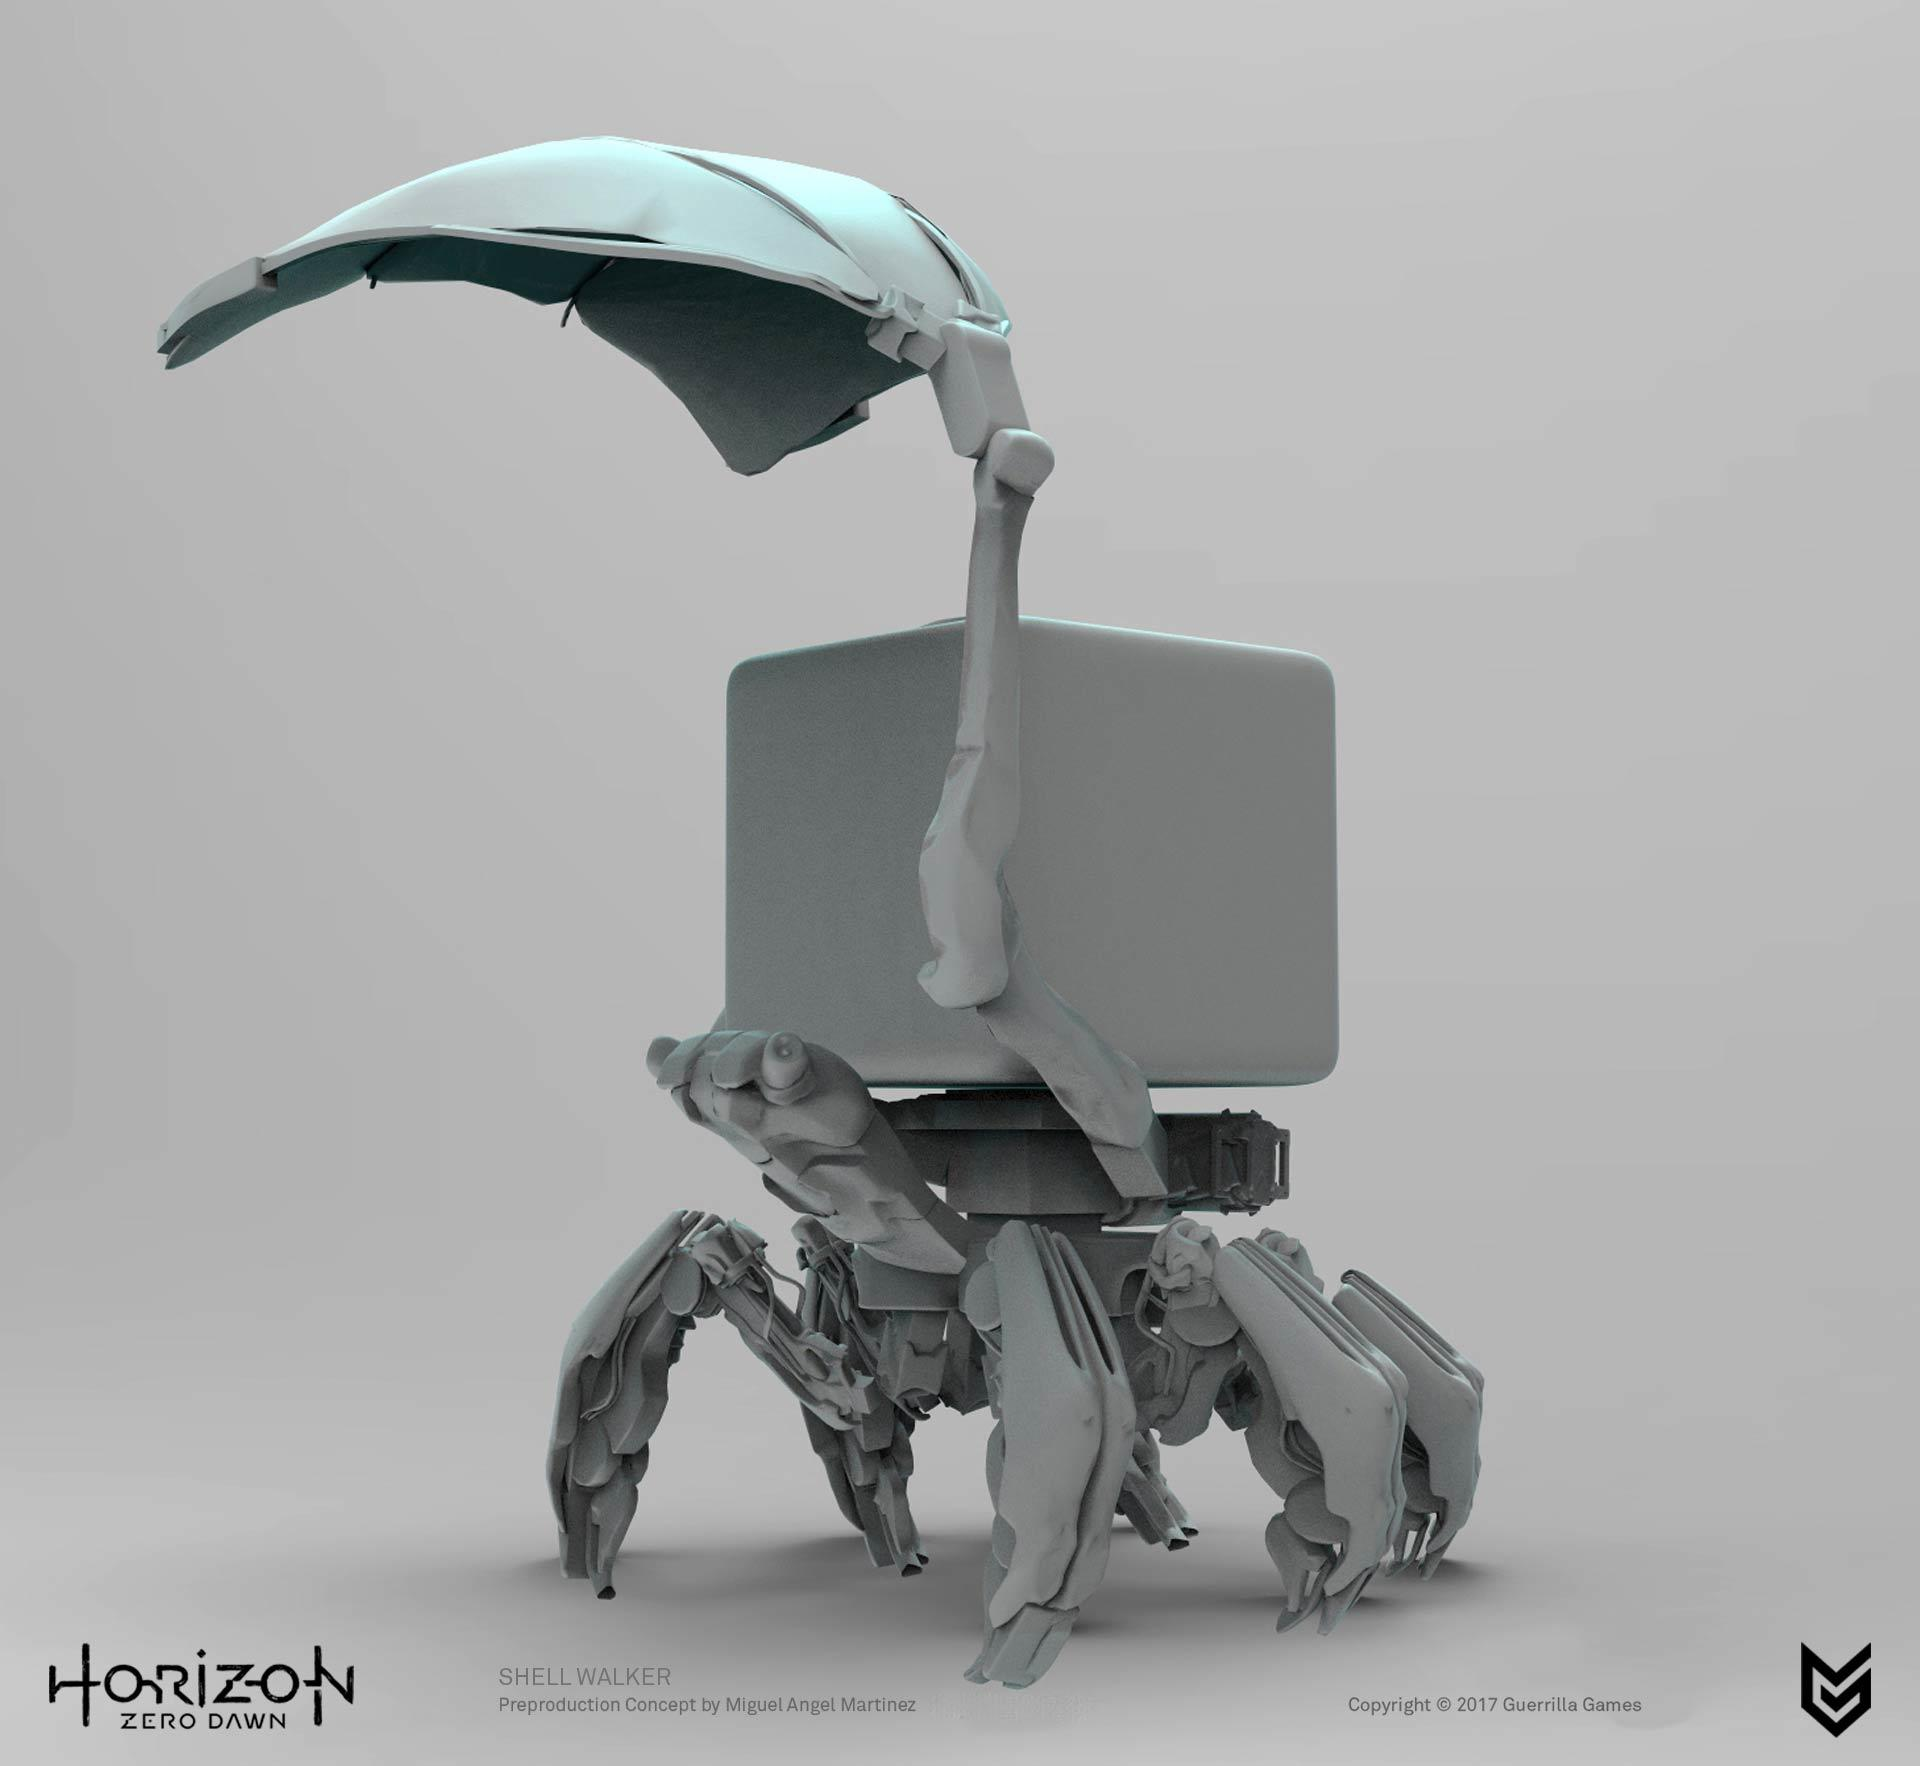 Horizon-Zero-Dawn-Shell-Walker-concept-art-4-Miguel-Angel-Martinez